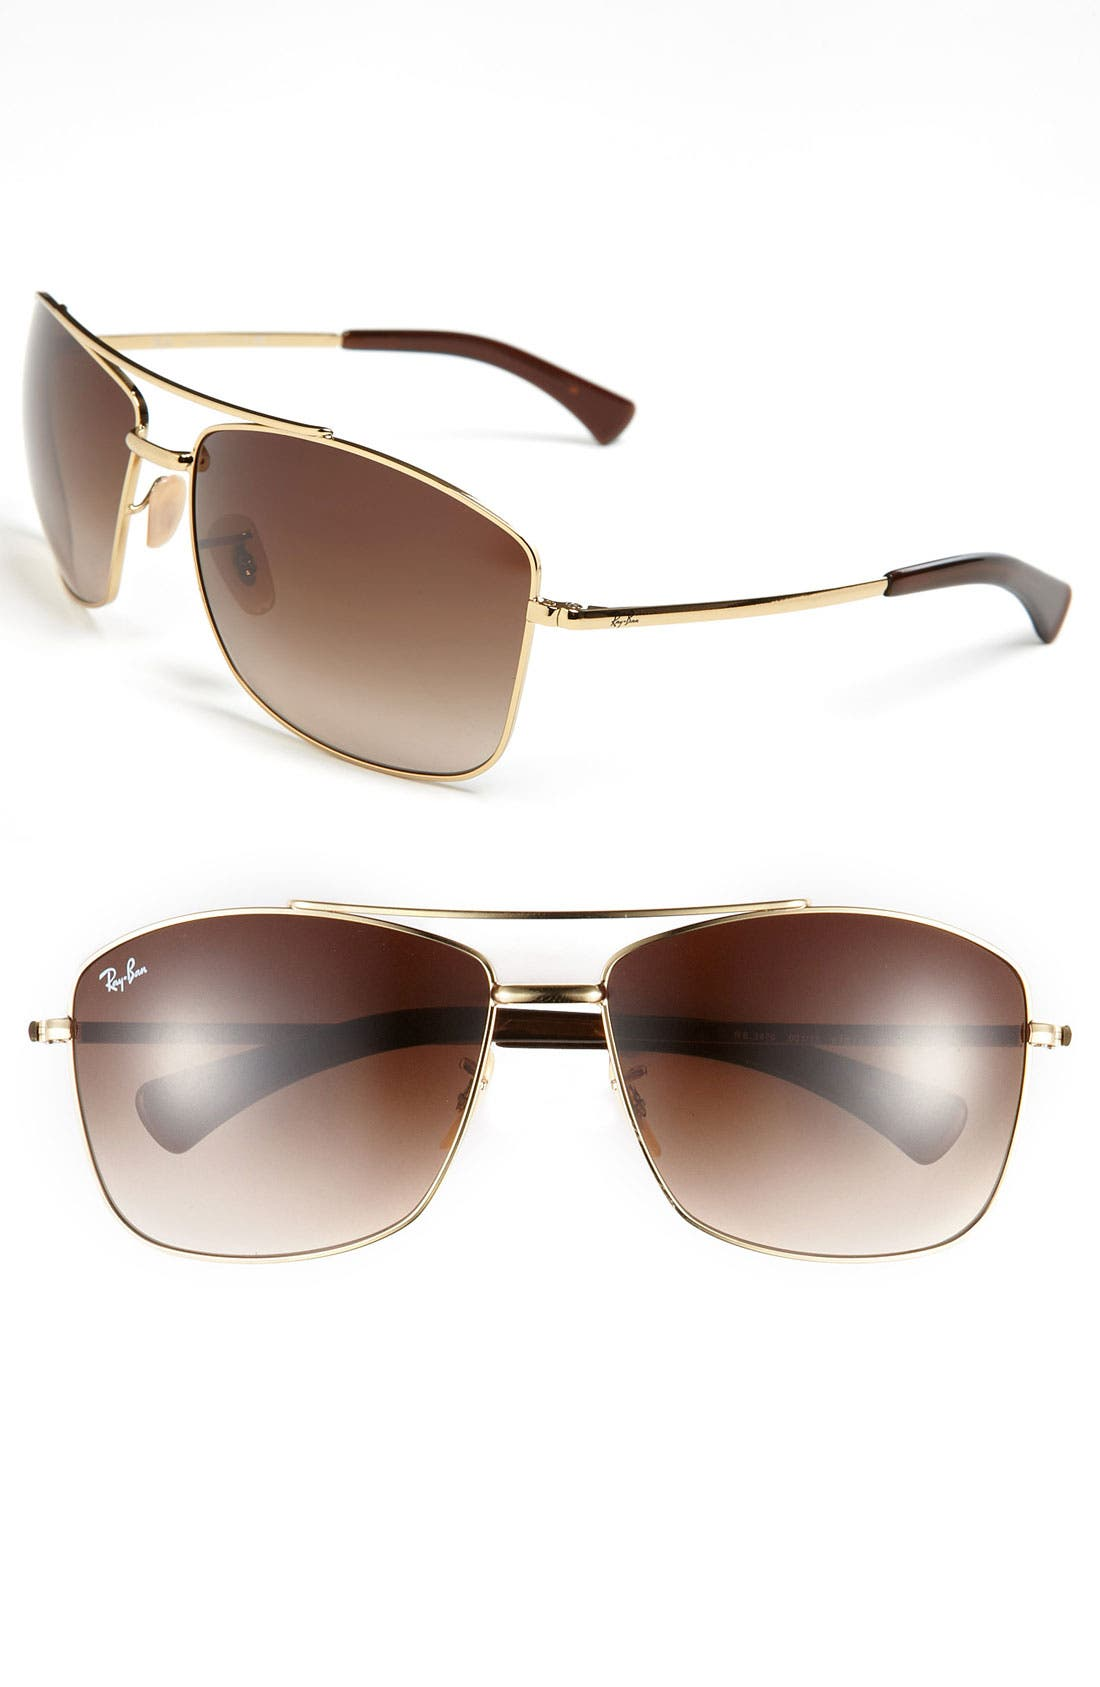 Main Image - Ray-Ban 63mm Aviator Sunglasses